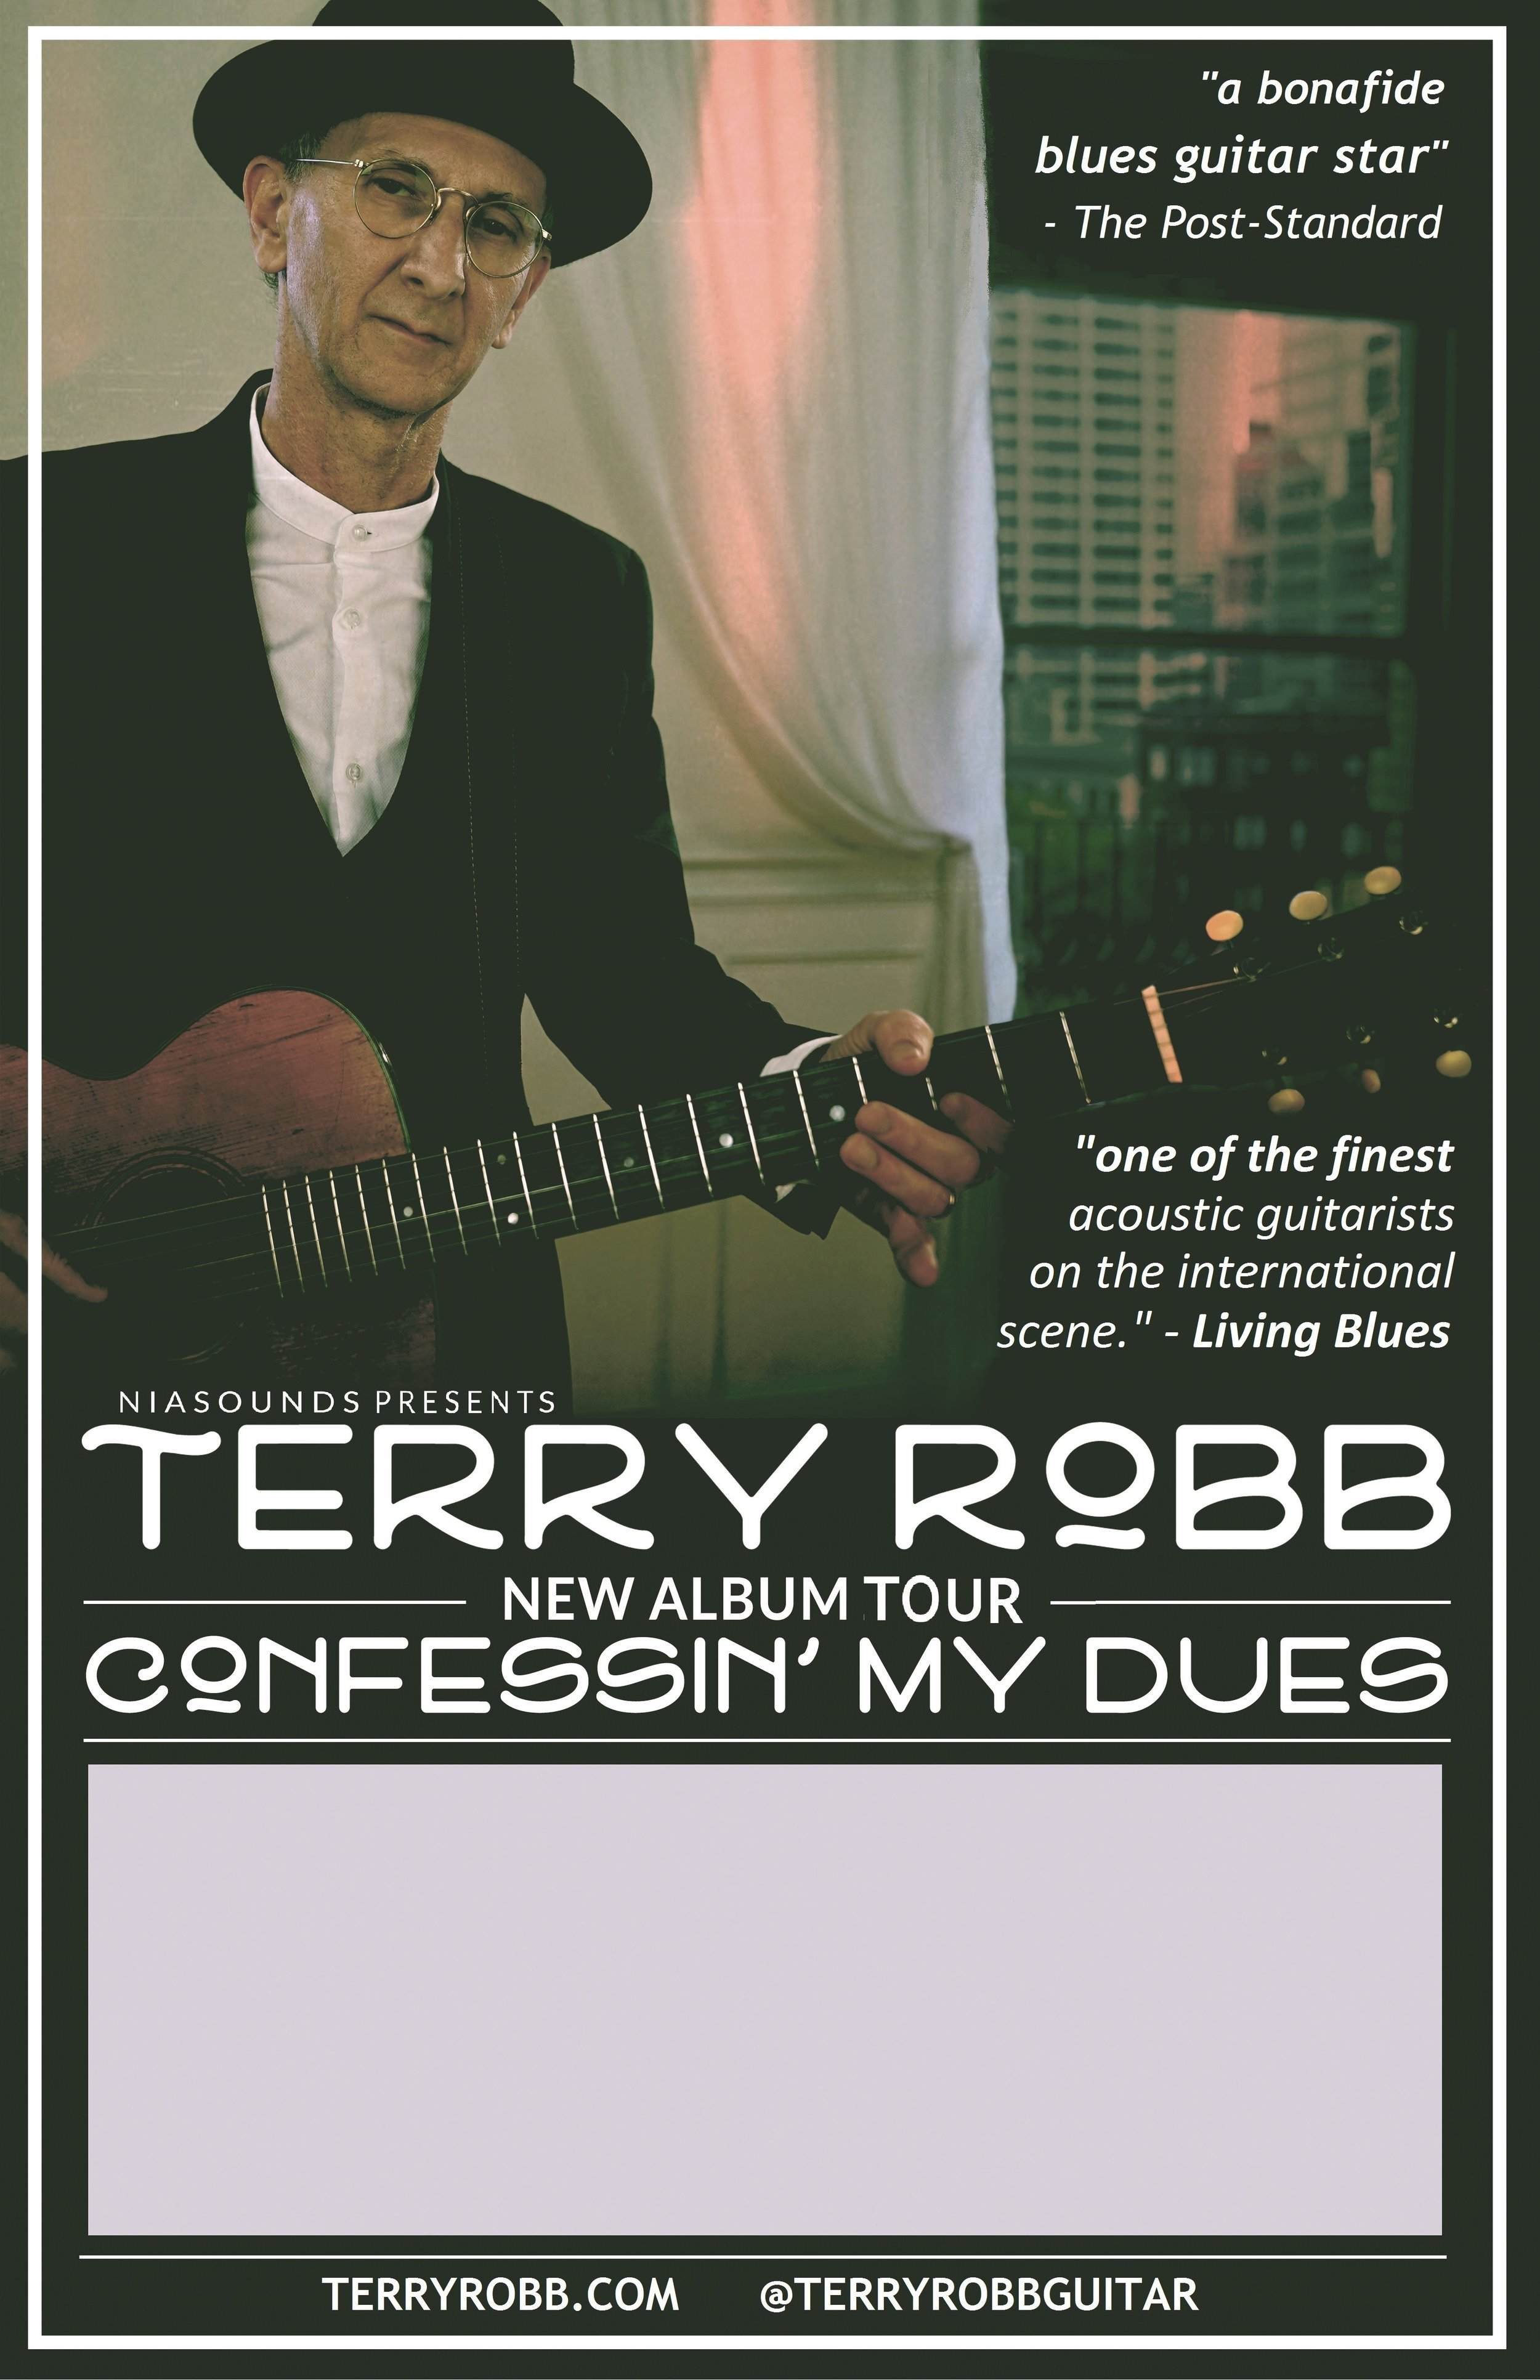 Terry Robb Grey Poster Template.jpg